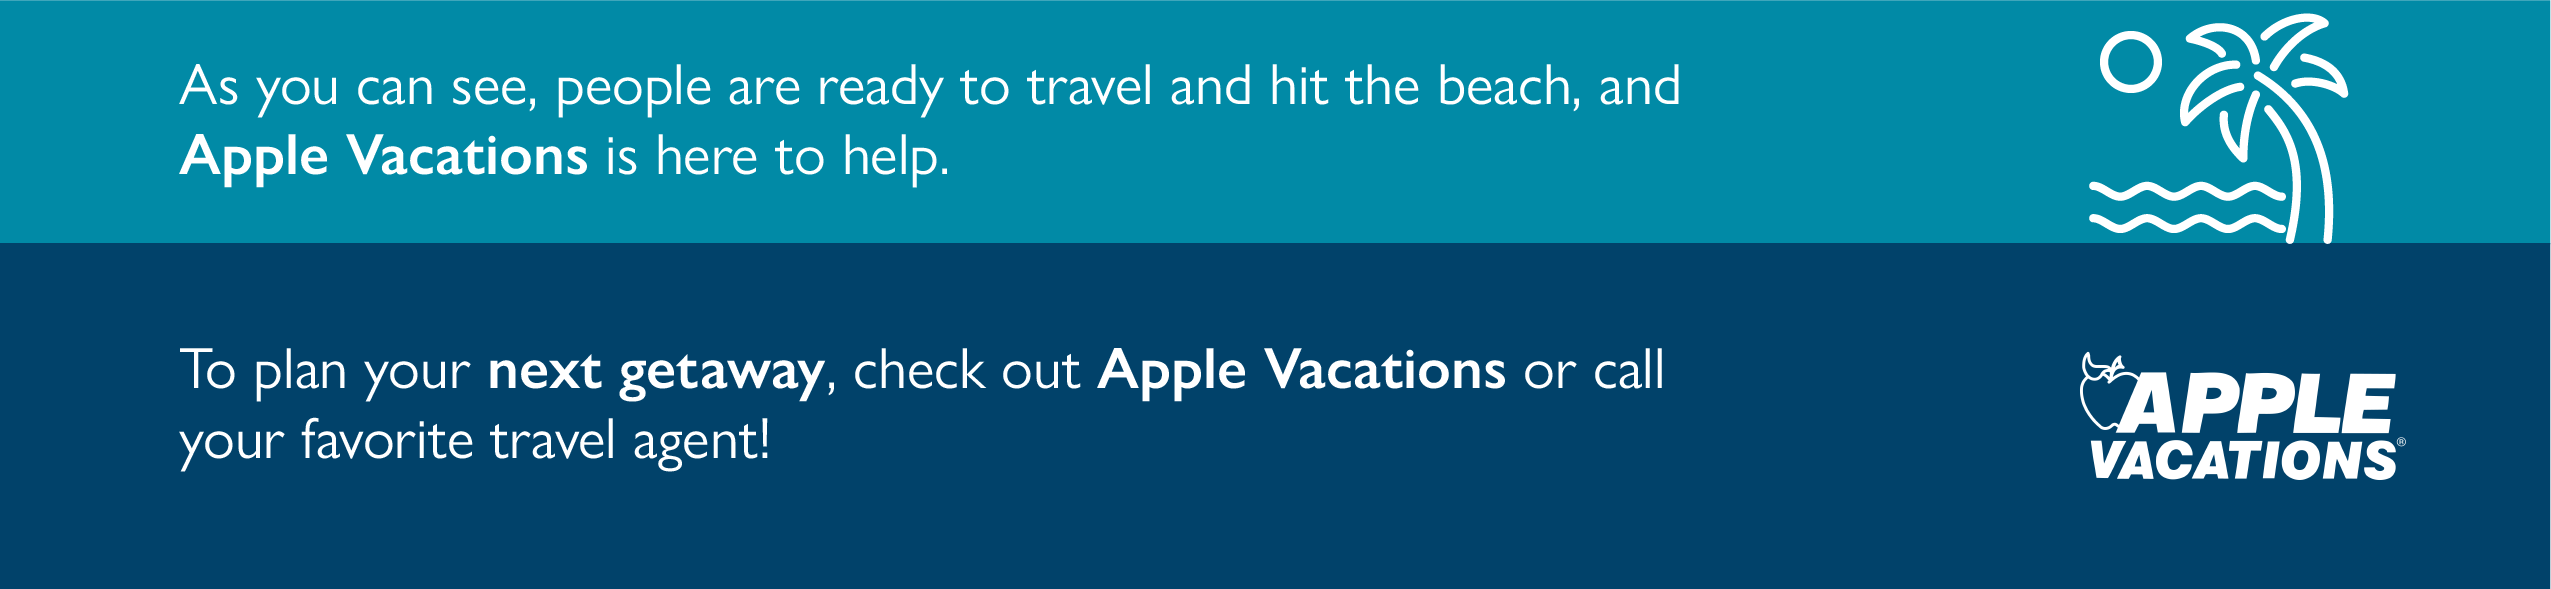 Apple Vacation Banner